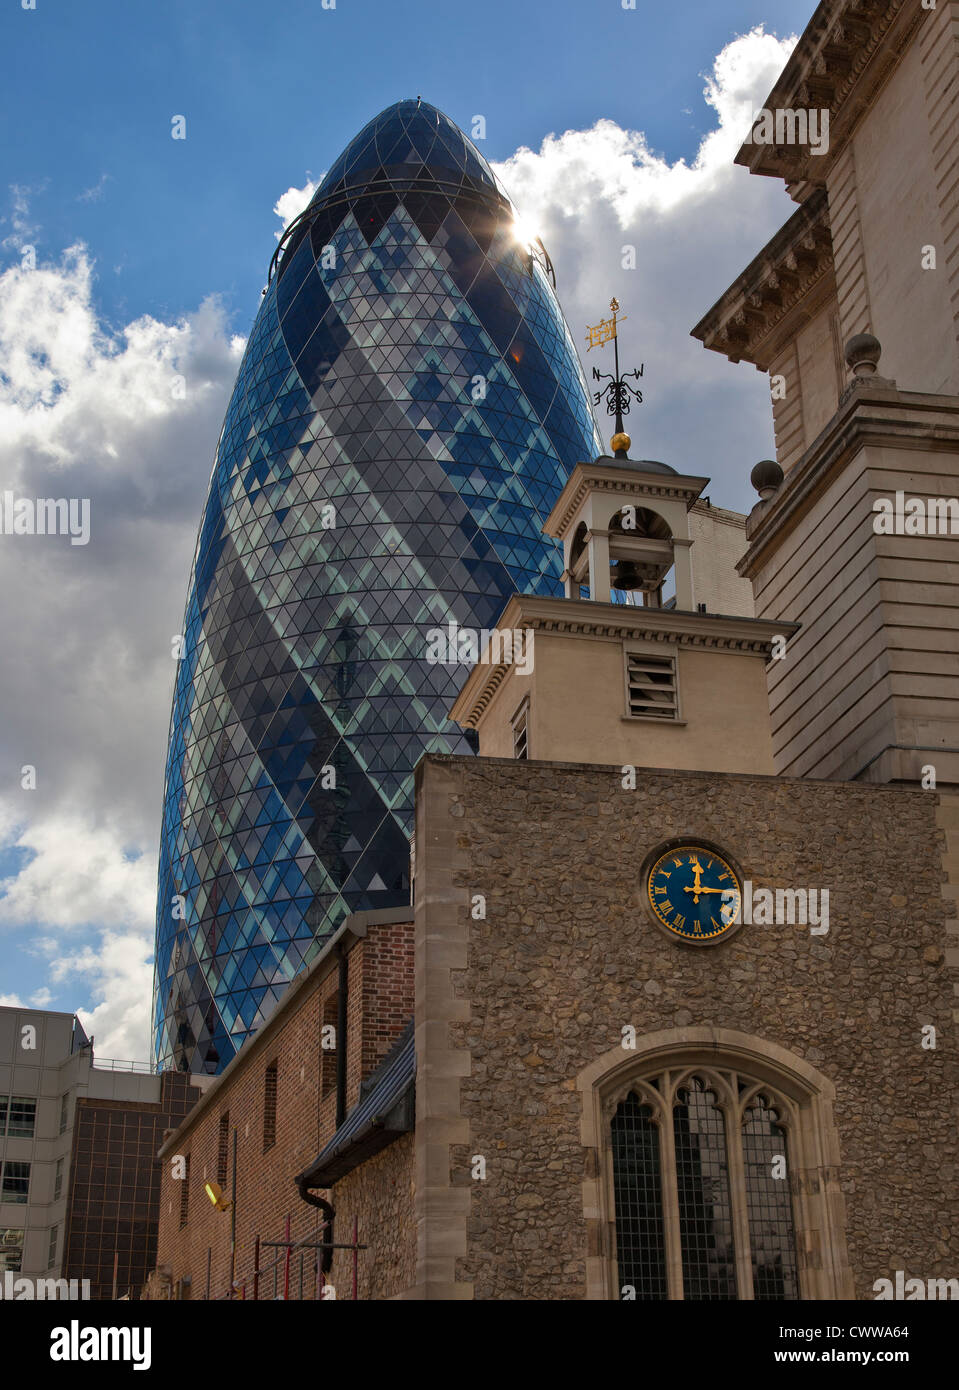 The Gherkin building in the City of London contrasts with the older surrounding architecture - Stock Image